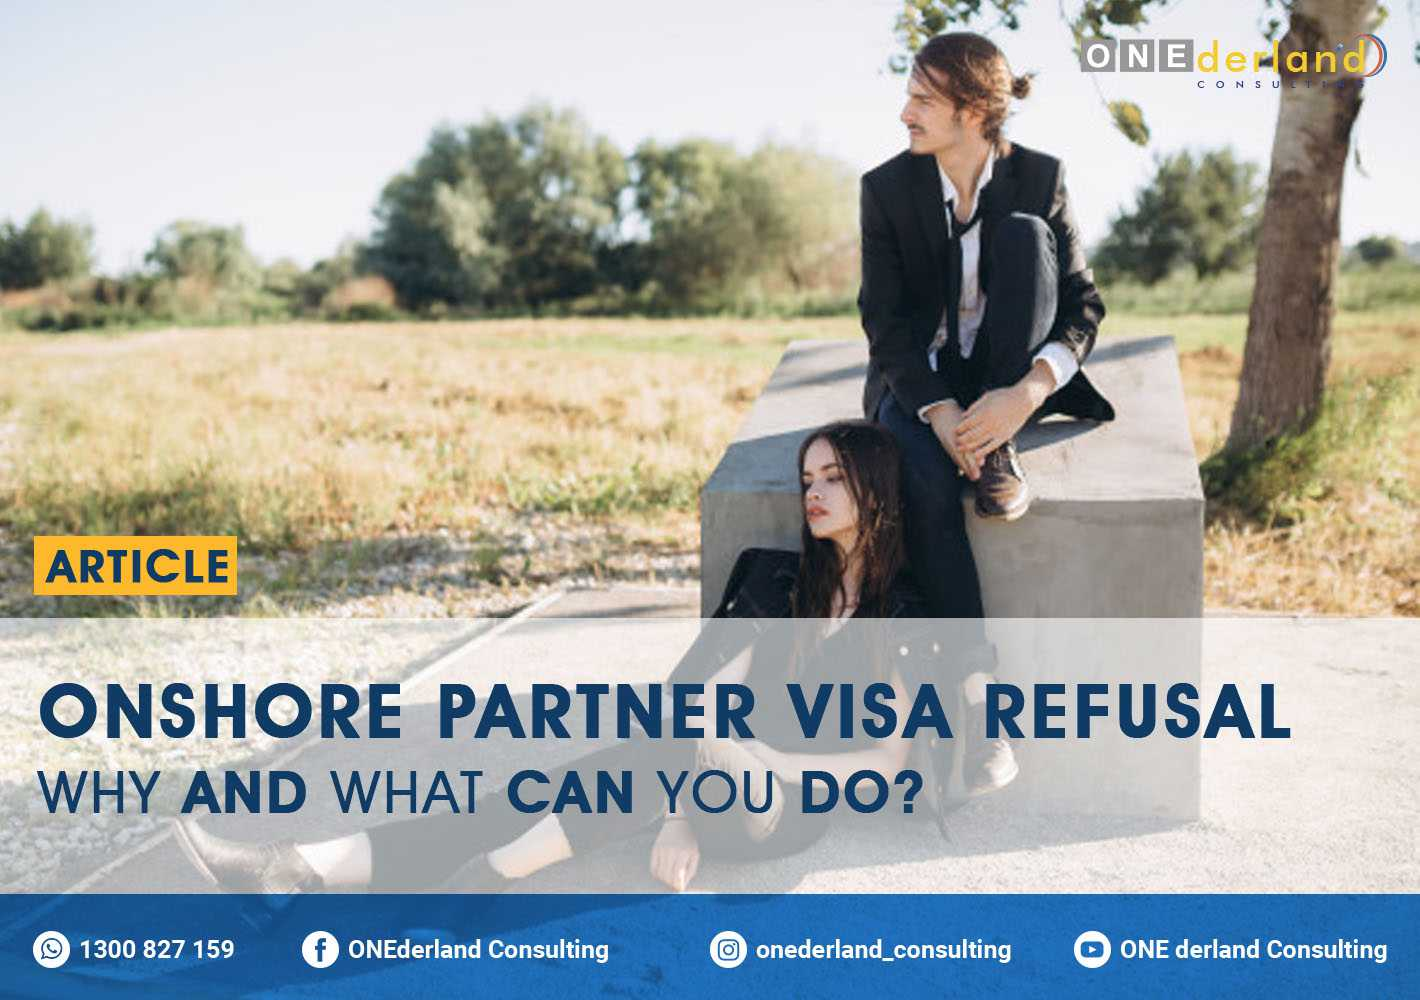 Onshore Partner Visa Refusal Explained by Migration Expert